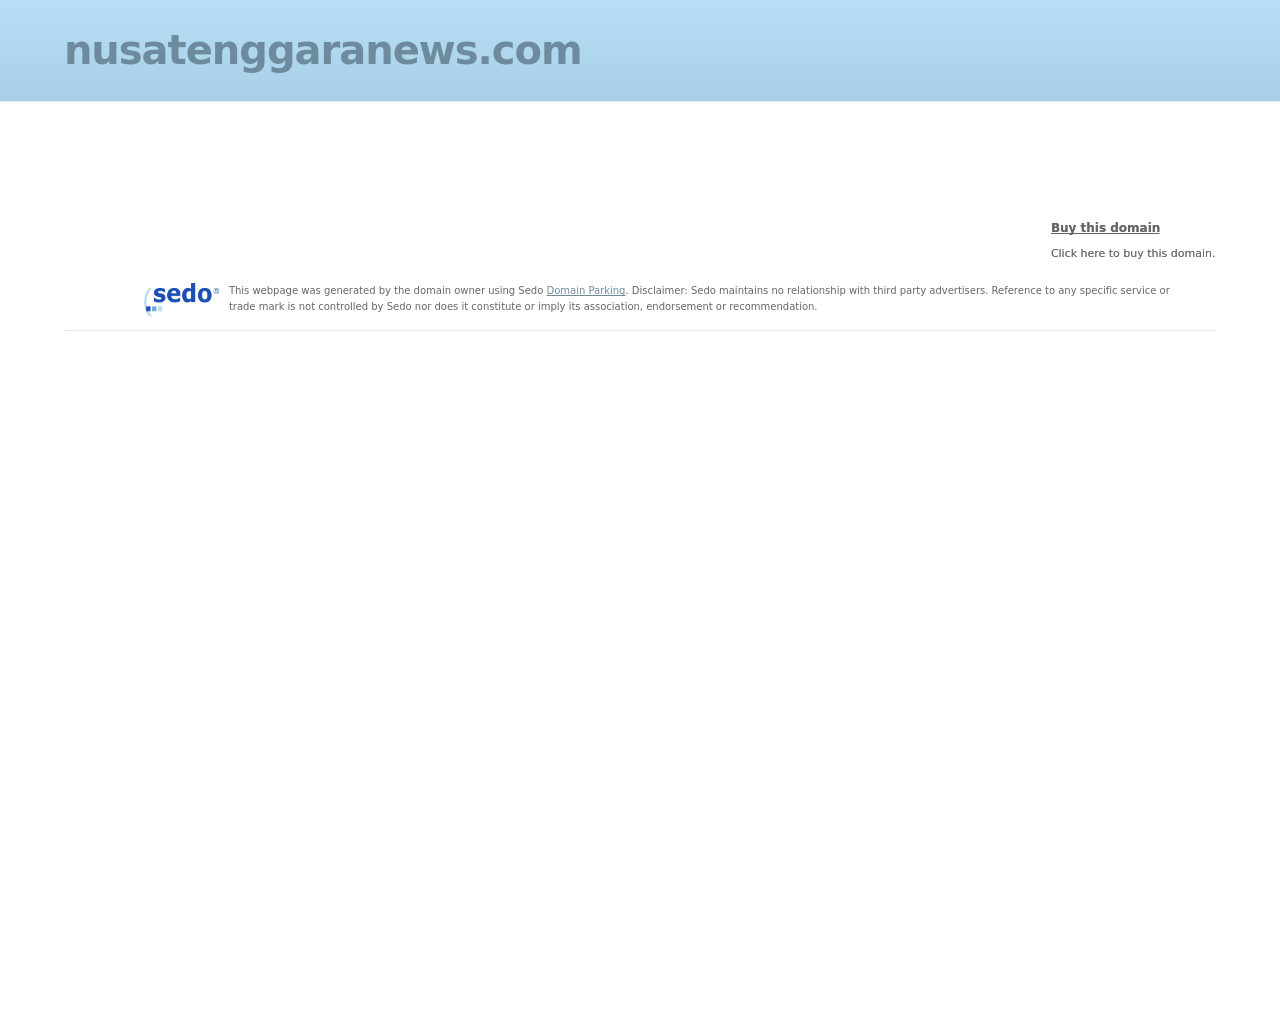 Nusatenggara-News-Advertising-Reviews-Pricing